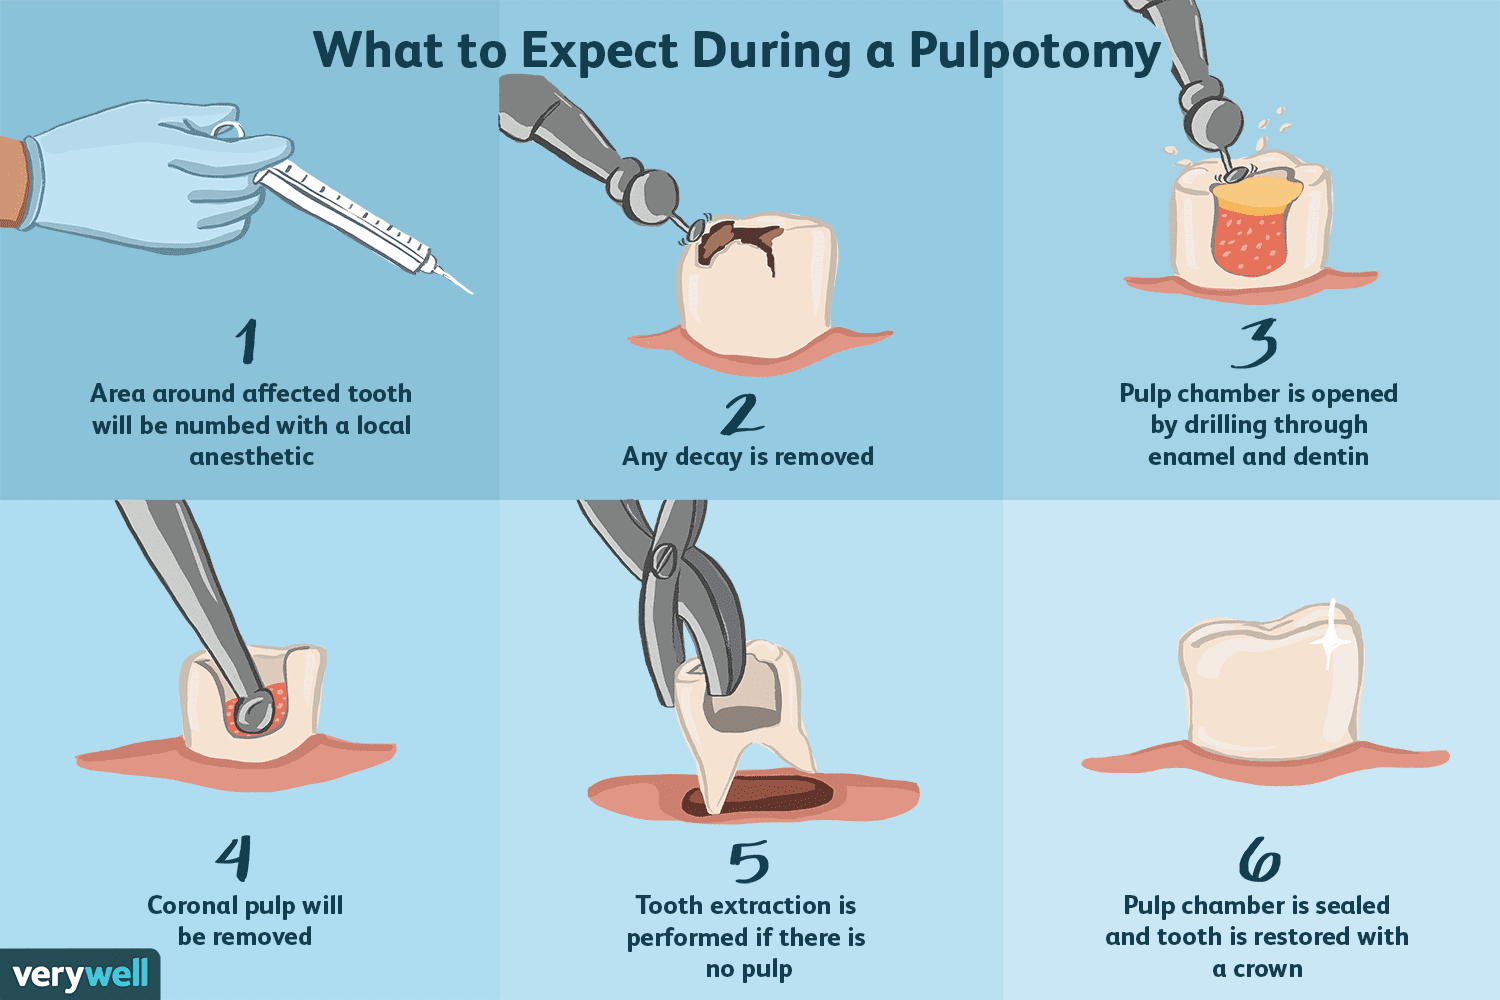 What to expect during pulpotomy